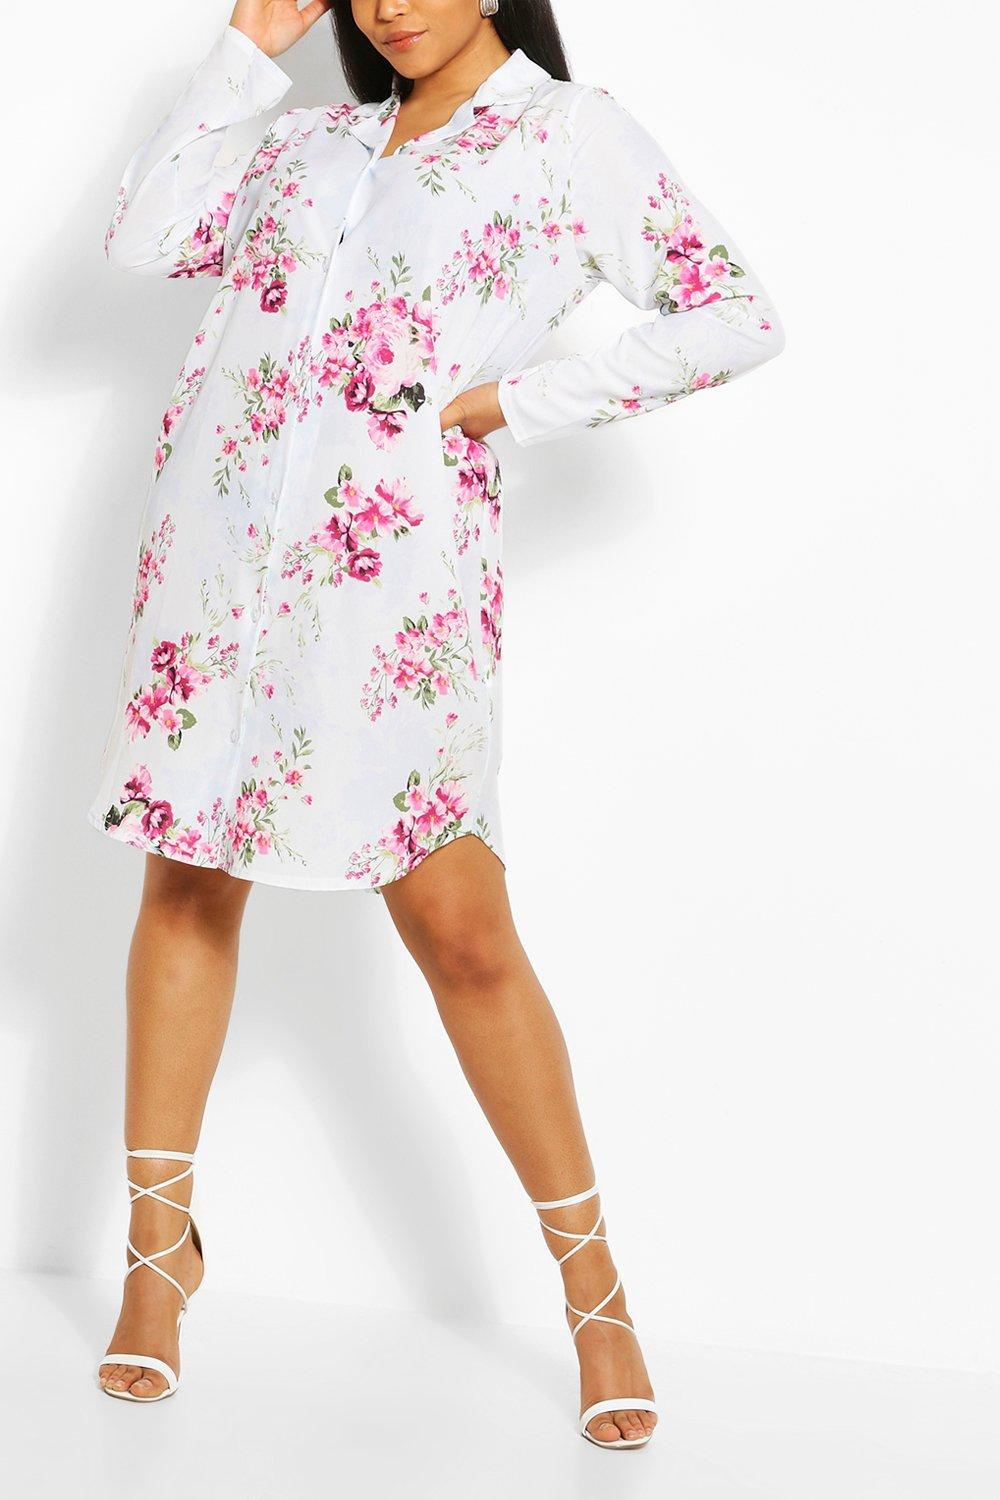 Plus Floral Print Shirt Dress 13